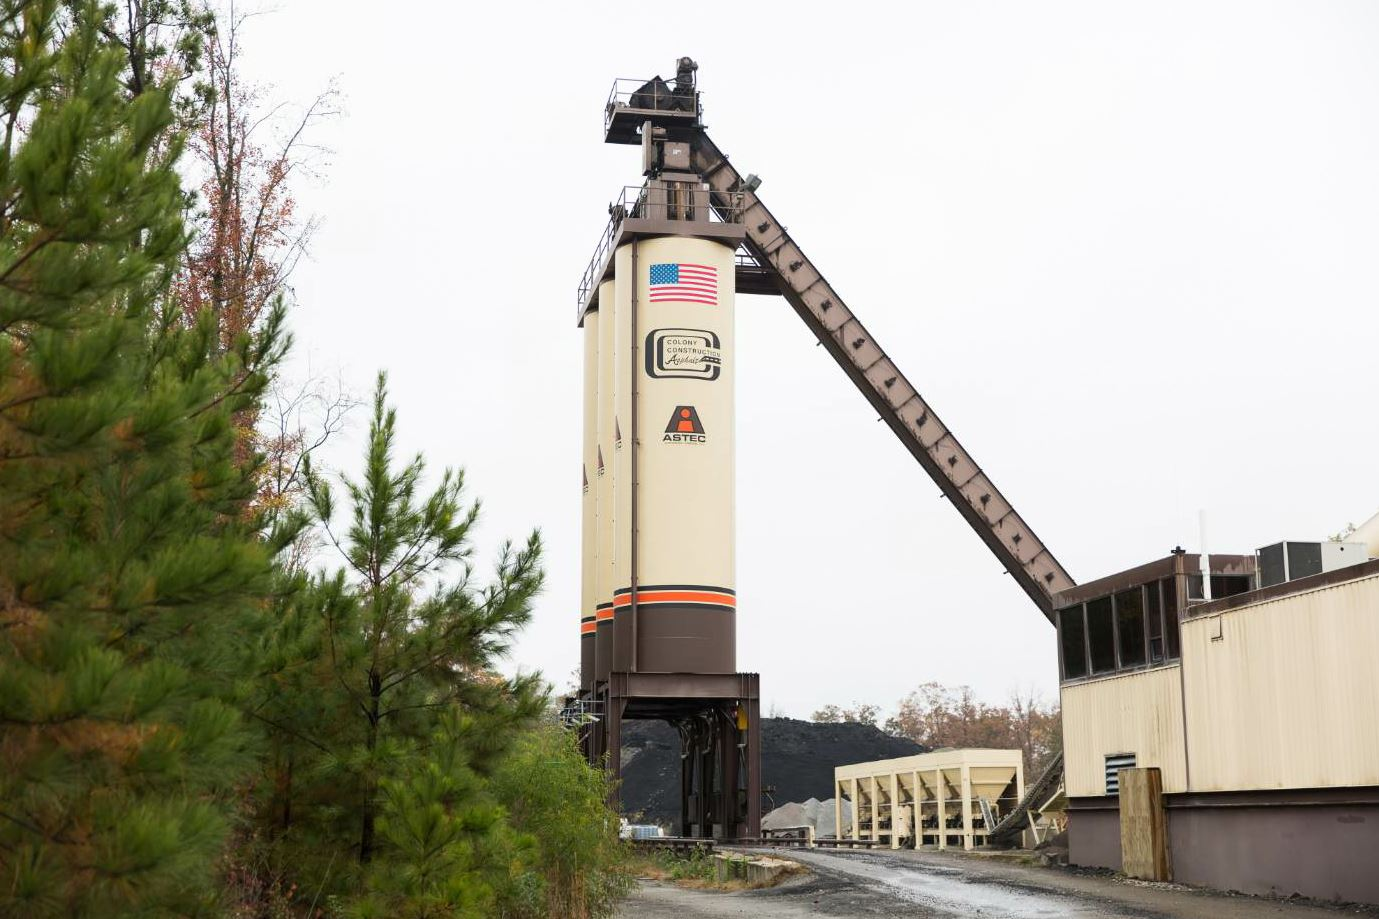 Colony's first asphalt plant was an Astec 300 TPH drum plant with three silos that opened in Powhatan in March of 2008.